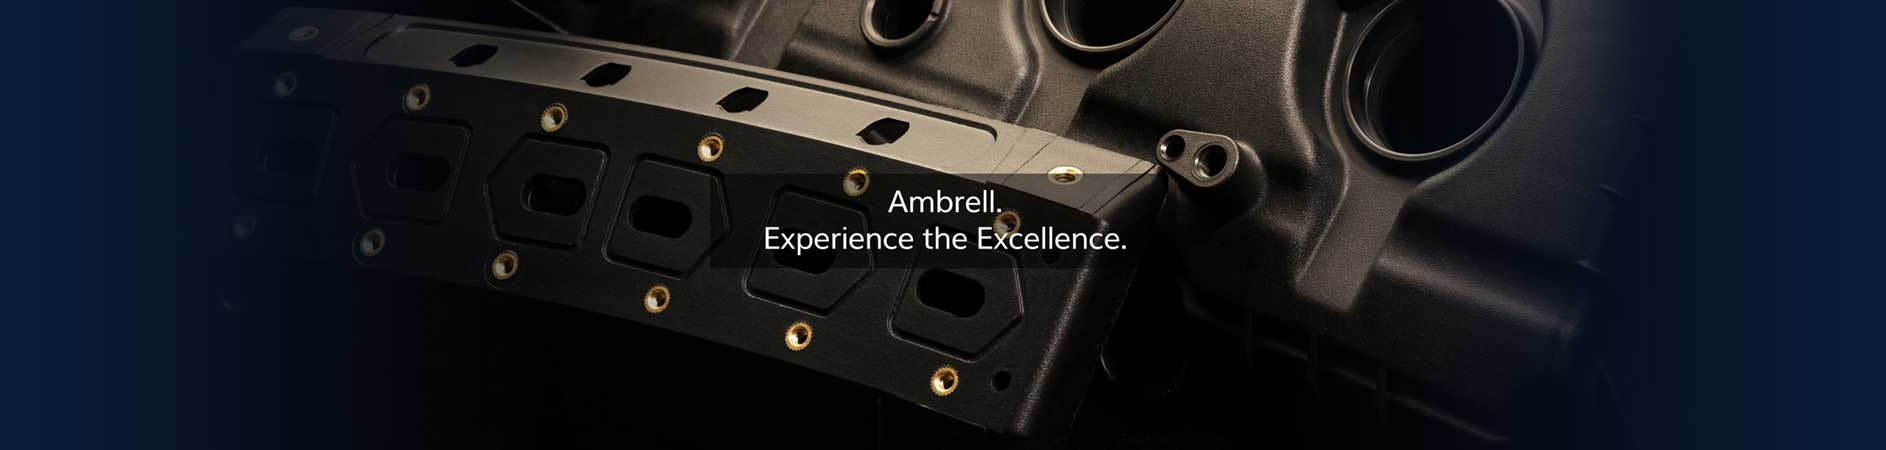 Ambrell. Experience the Excellence.